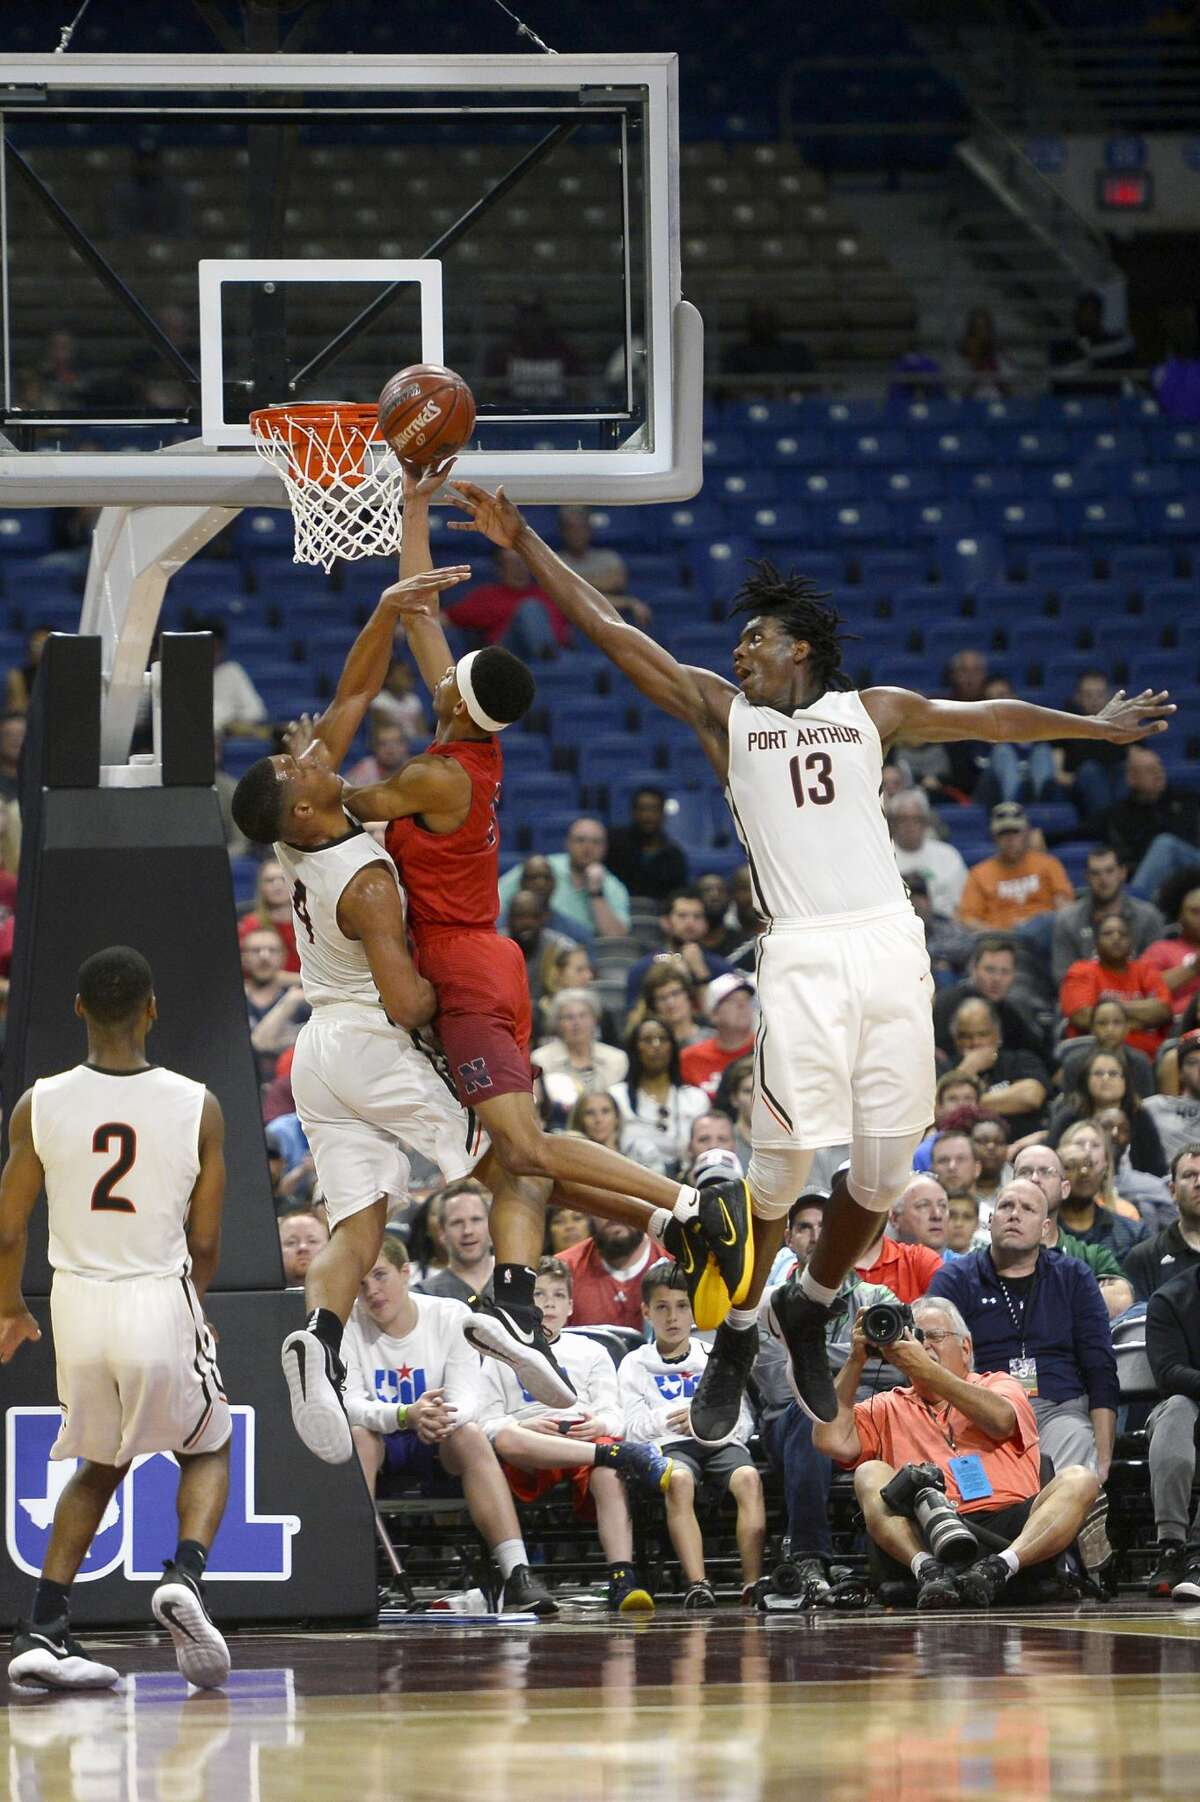 Memorial's Darion Chatman and Nathan Clover defend a shot against Northwest in the class 5A state final at the Alamodome in San Antonio on Saturday afternoon. Photo taken Saturday 3/10/18 Ryan Pelham/The Enterprise